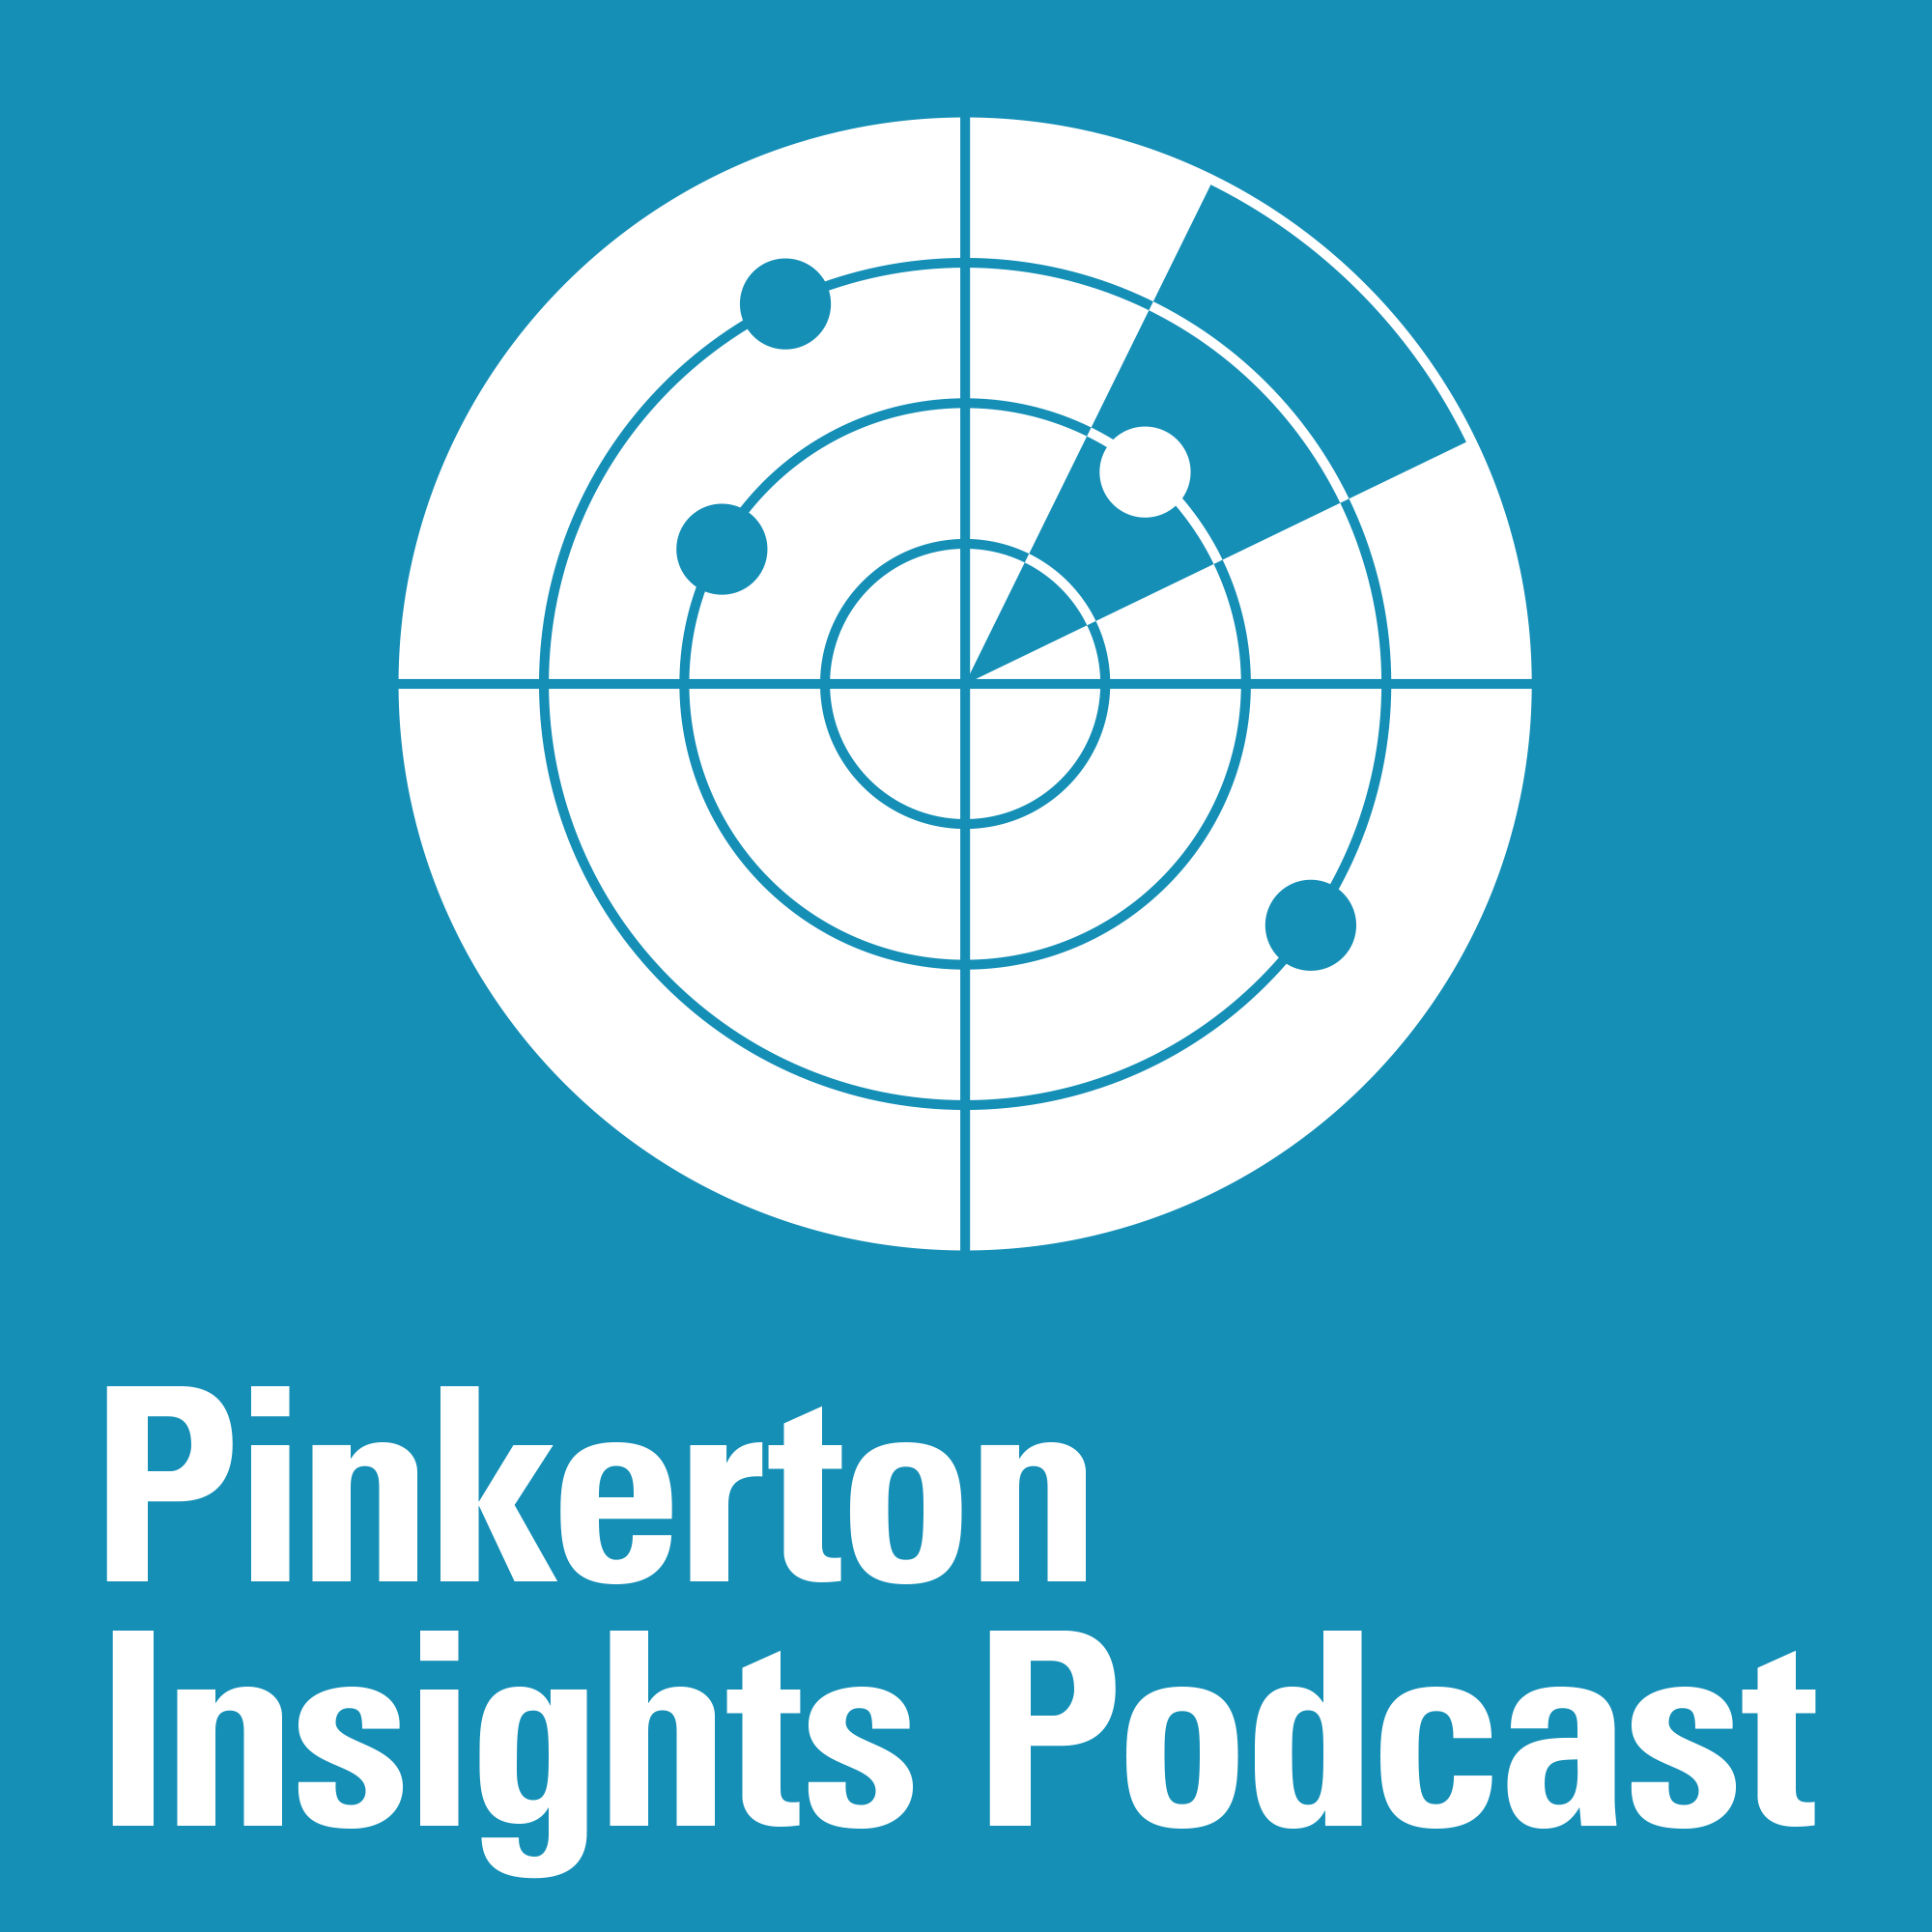 Pinkerton Insights Podcast | Podbay